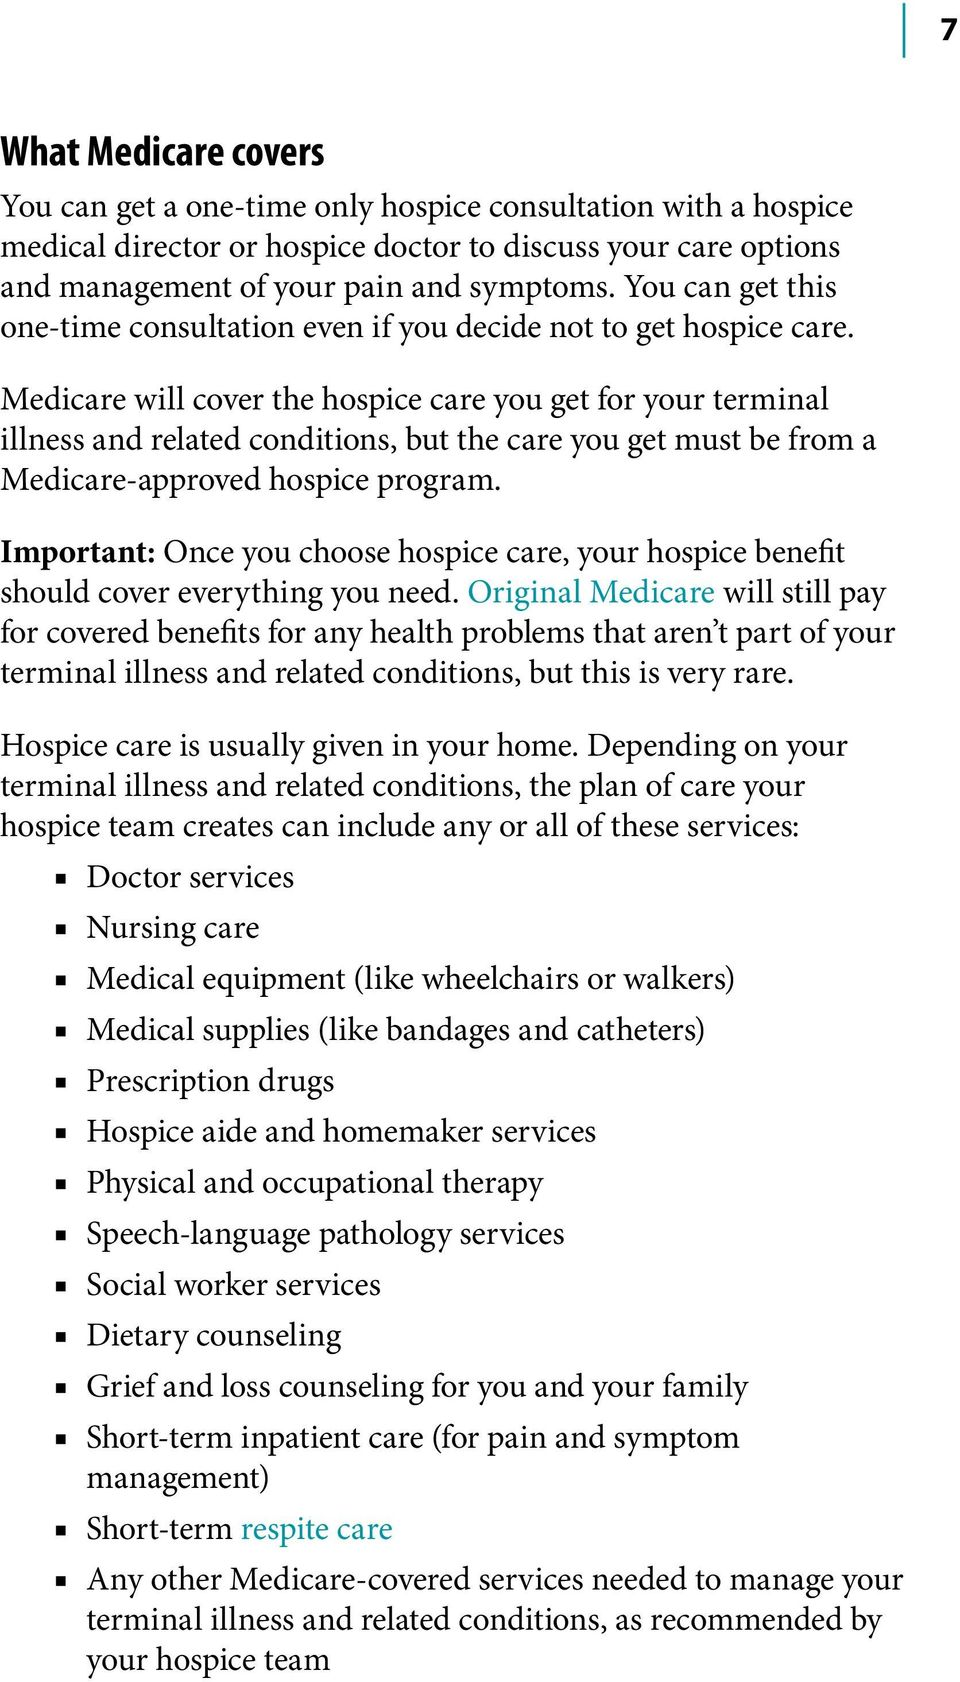 Medicare will cover the hospice care you get for your terminal illness and related conditions, but the care you get must be from a Medicare-approved hospice program.